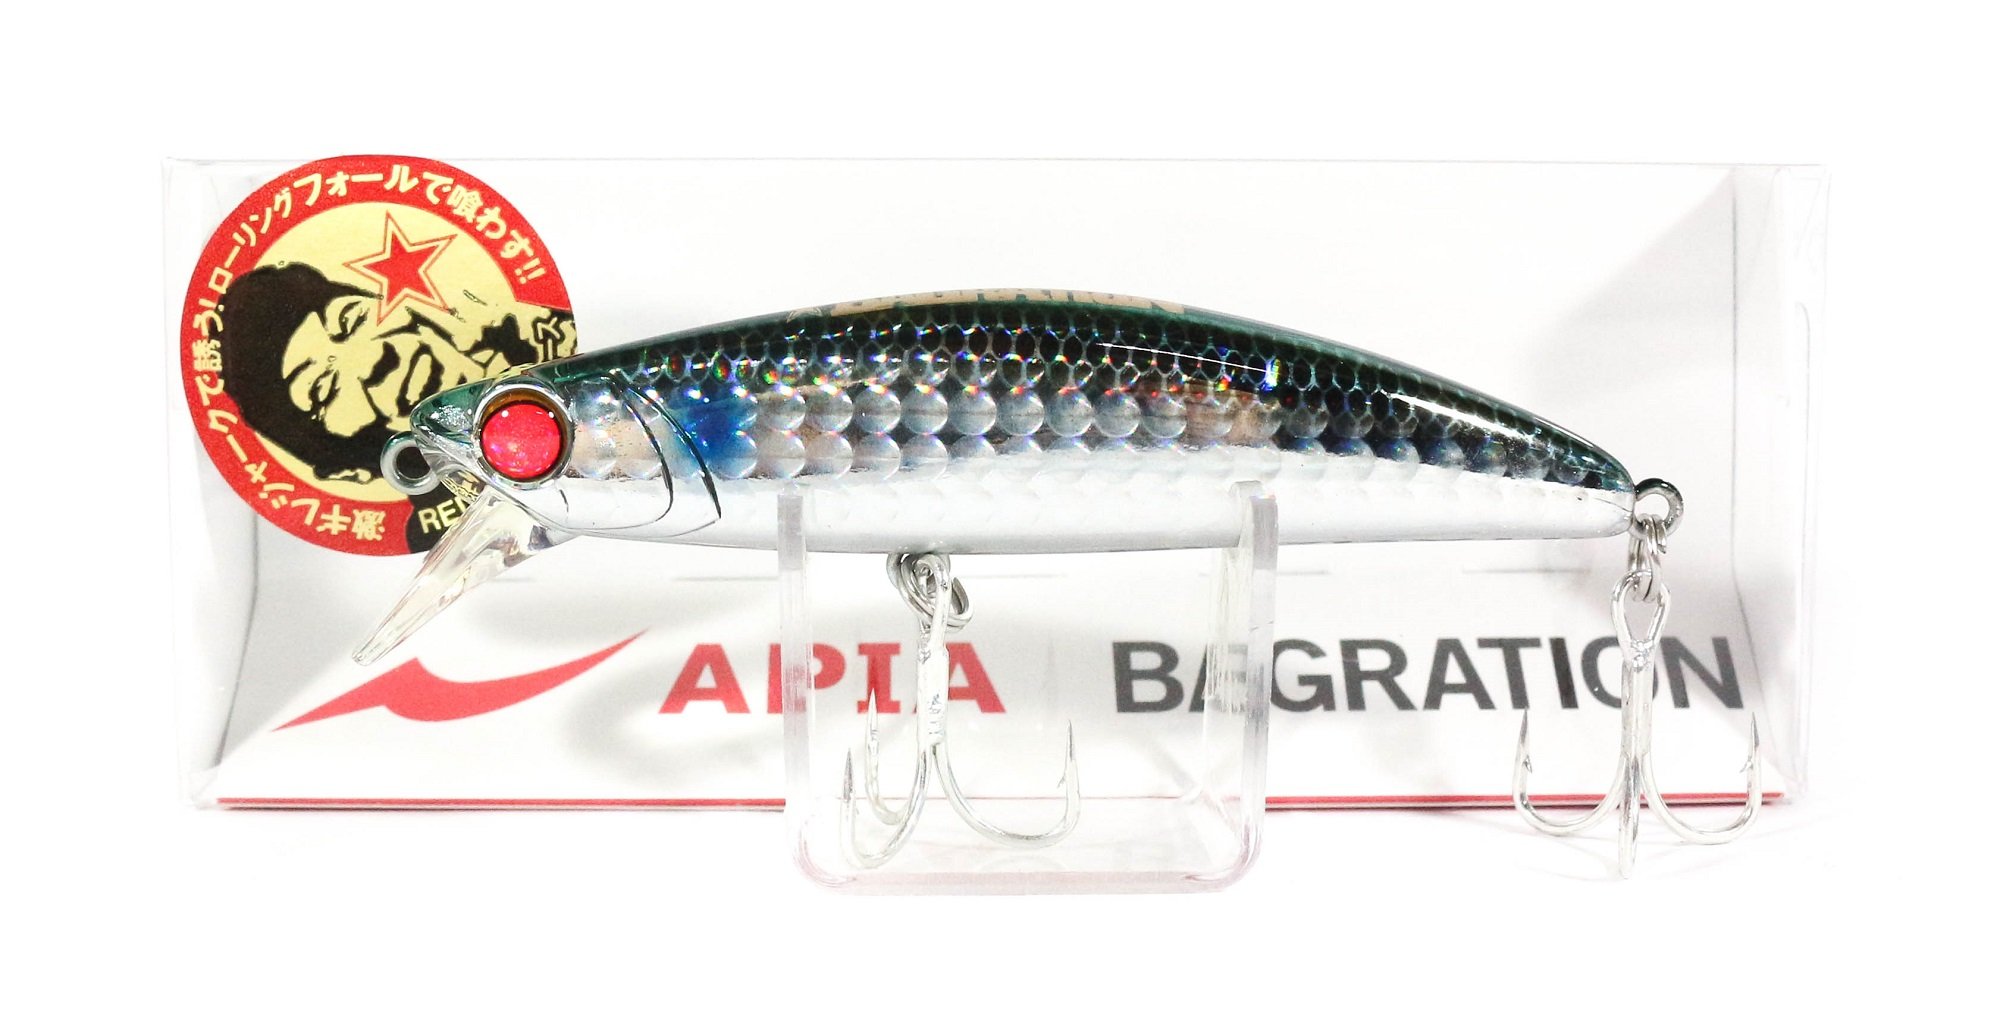 Apia Bagration 80 Sinking Lure 05 (5282)